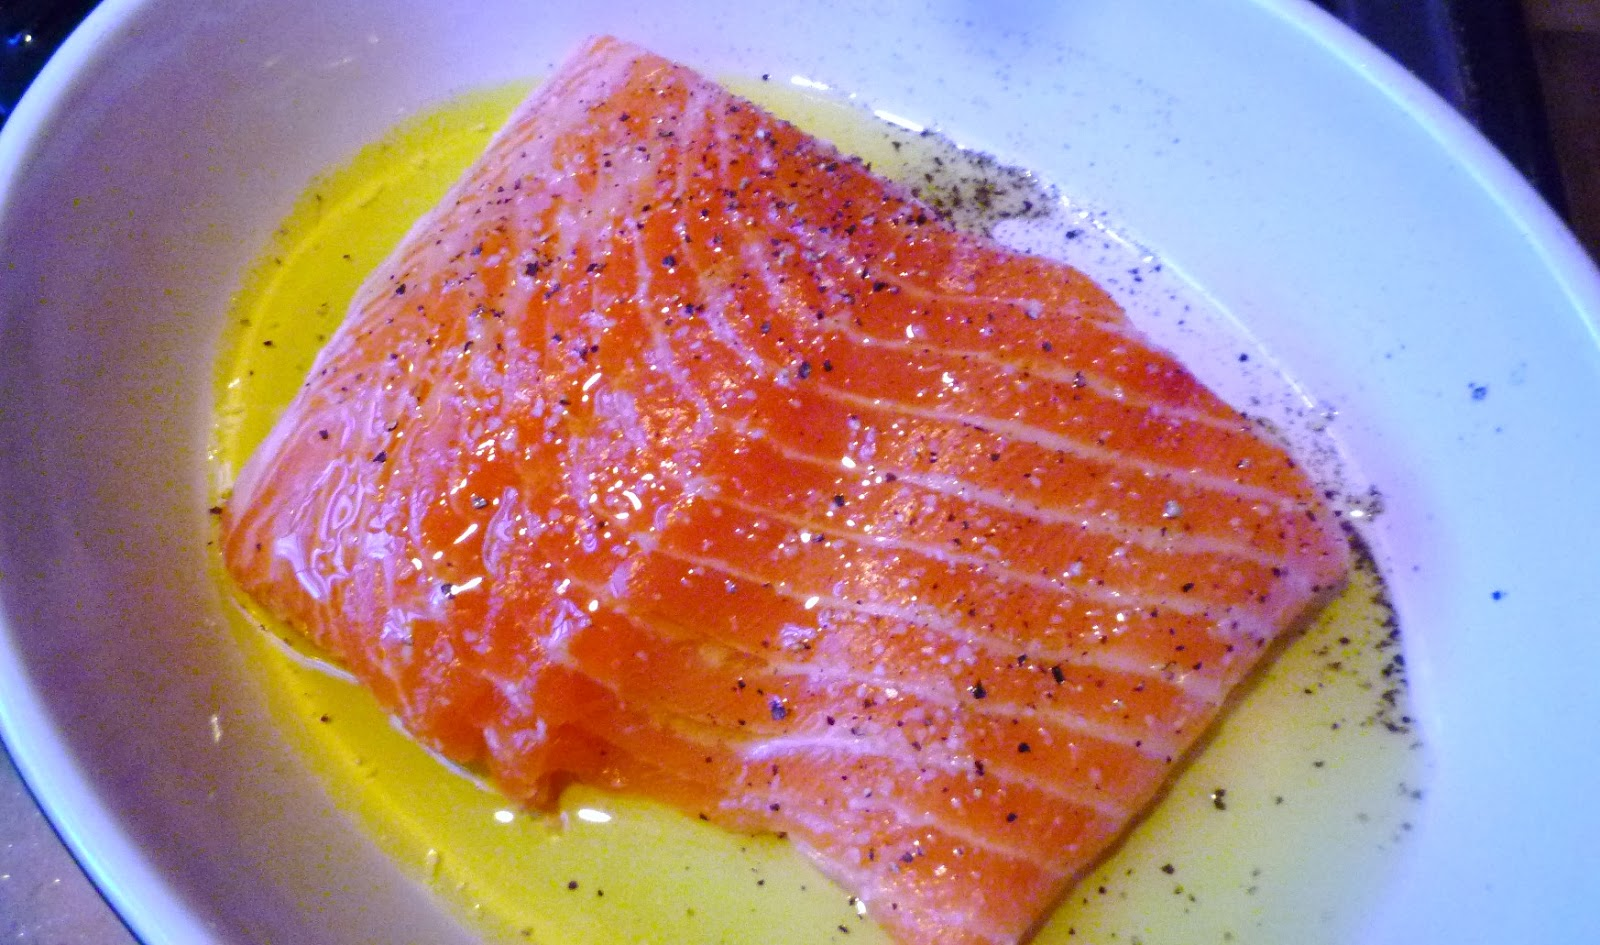 Baked Salmon Fish Drizzled In Olive Oil